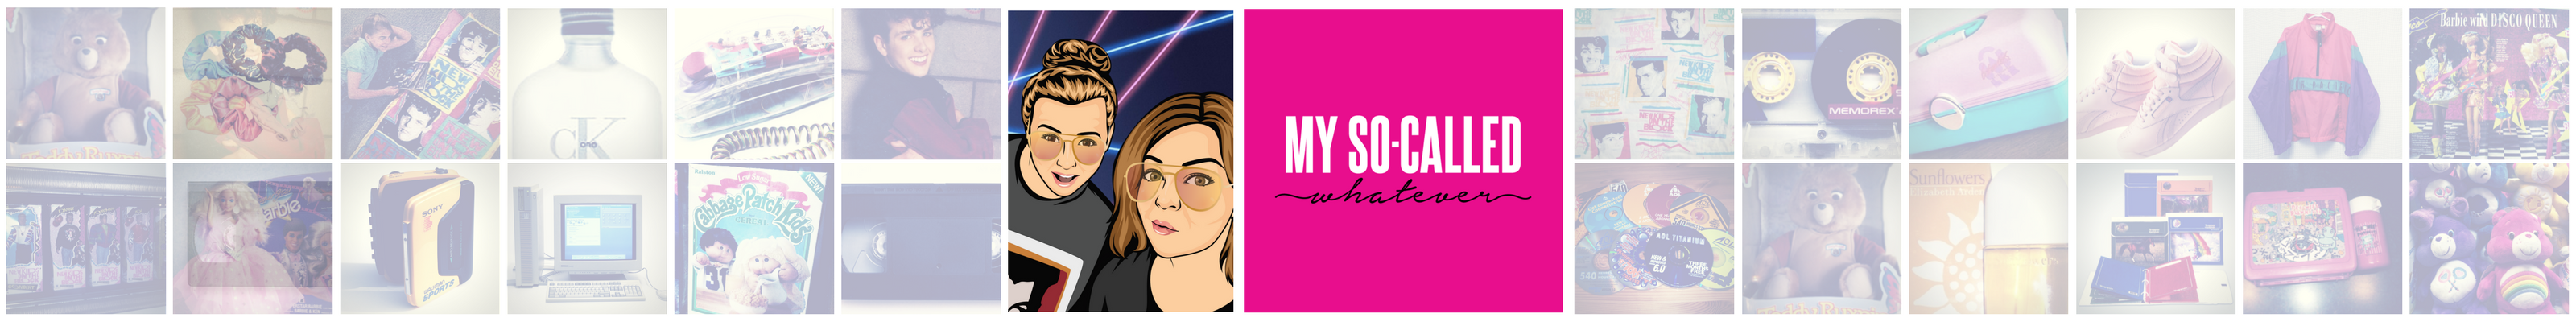 My So-Called Whatever | Teespring